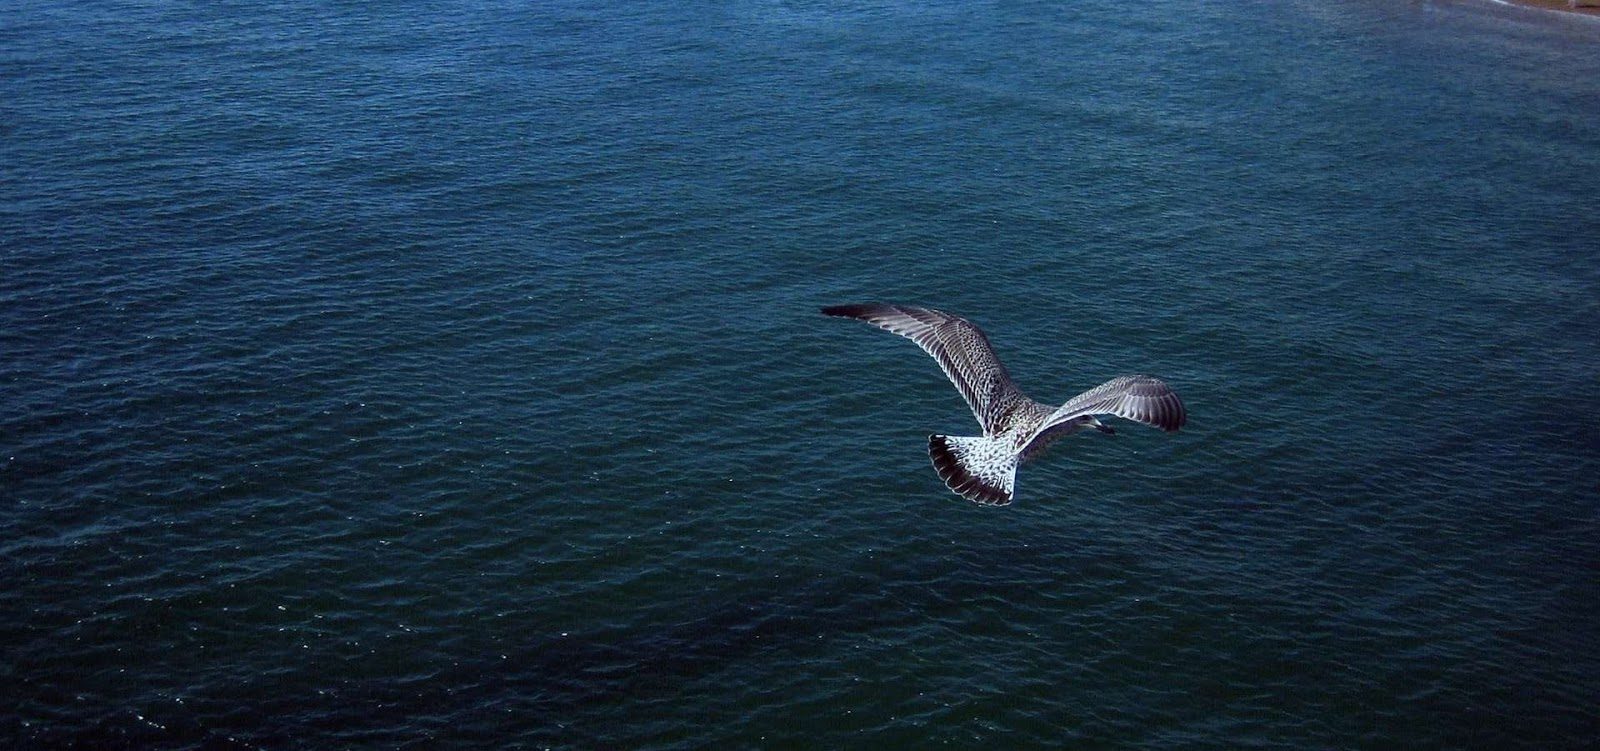 a Seagull Flying over the ocean